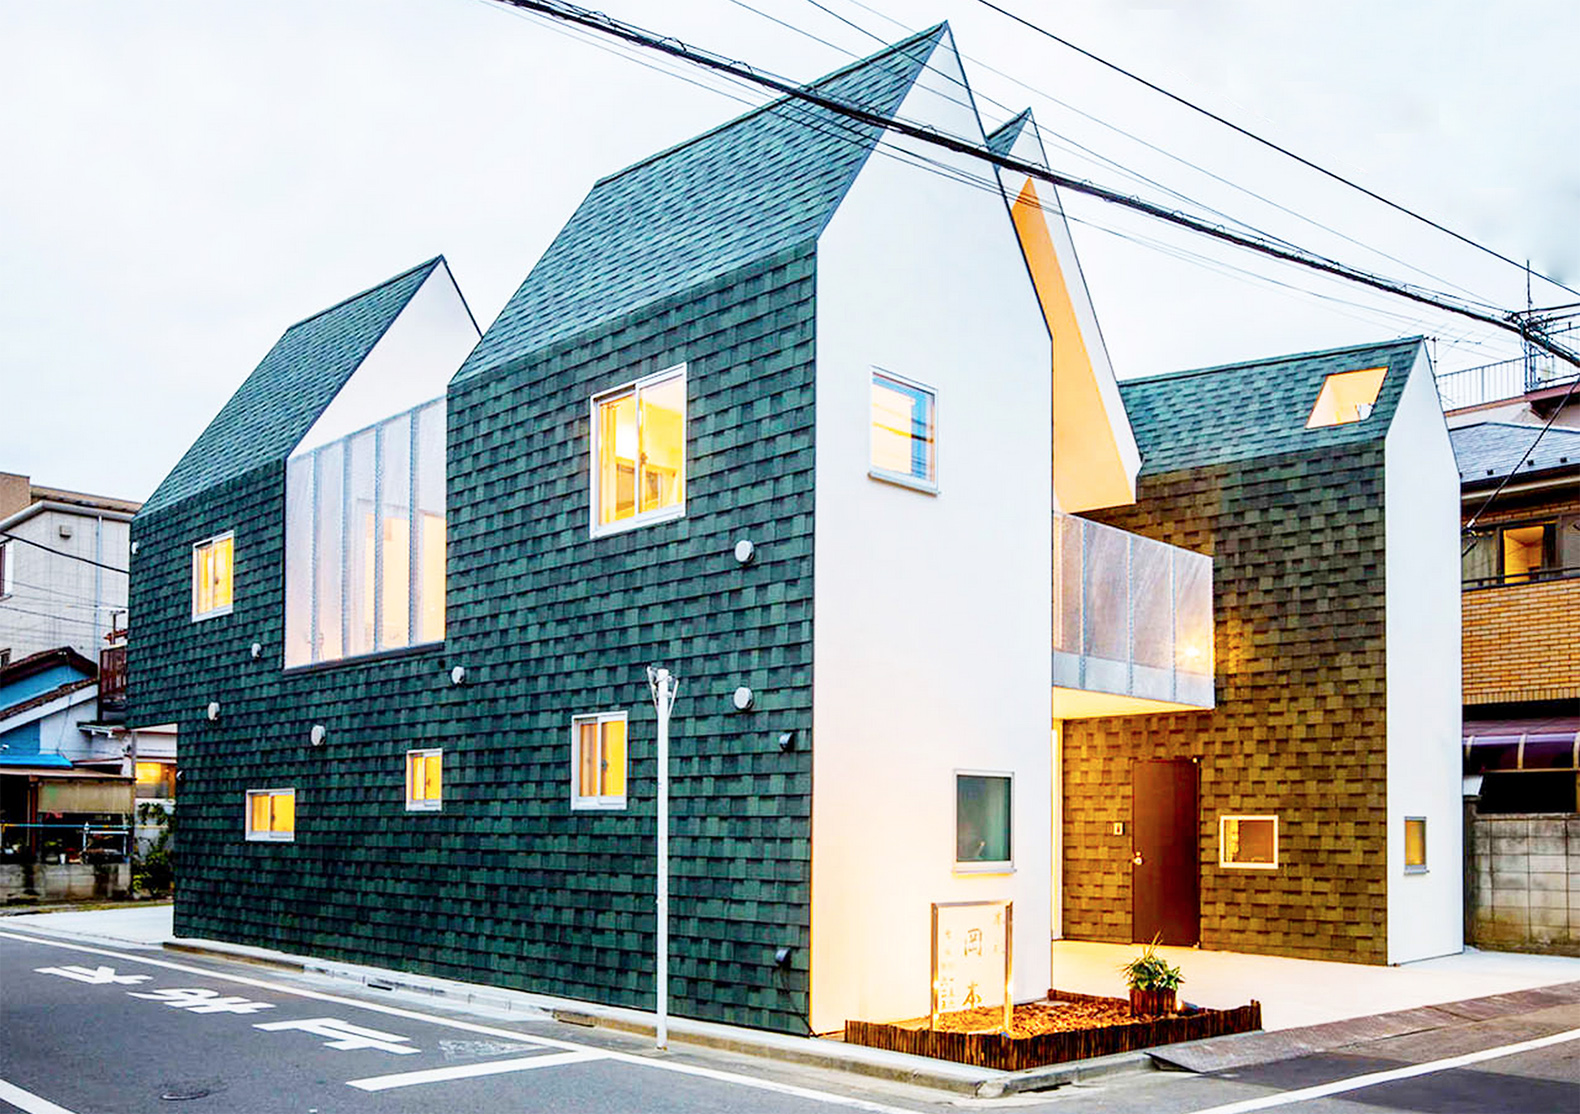 Starpilots Shingle Clad Housecut In Tokyo Was Built To Shrink Size